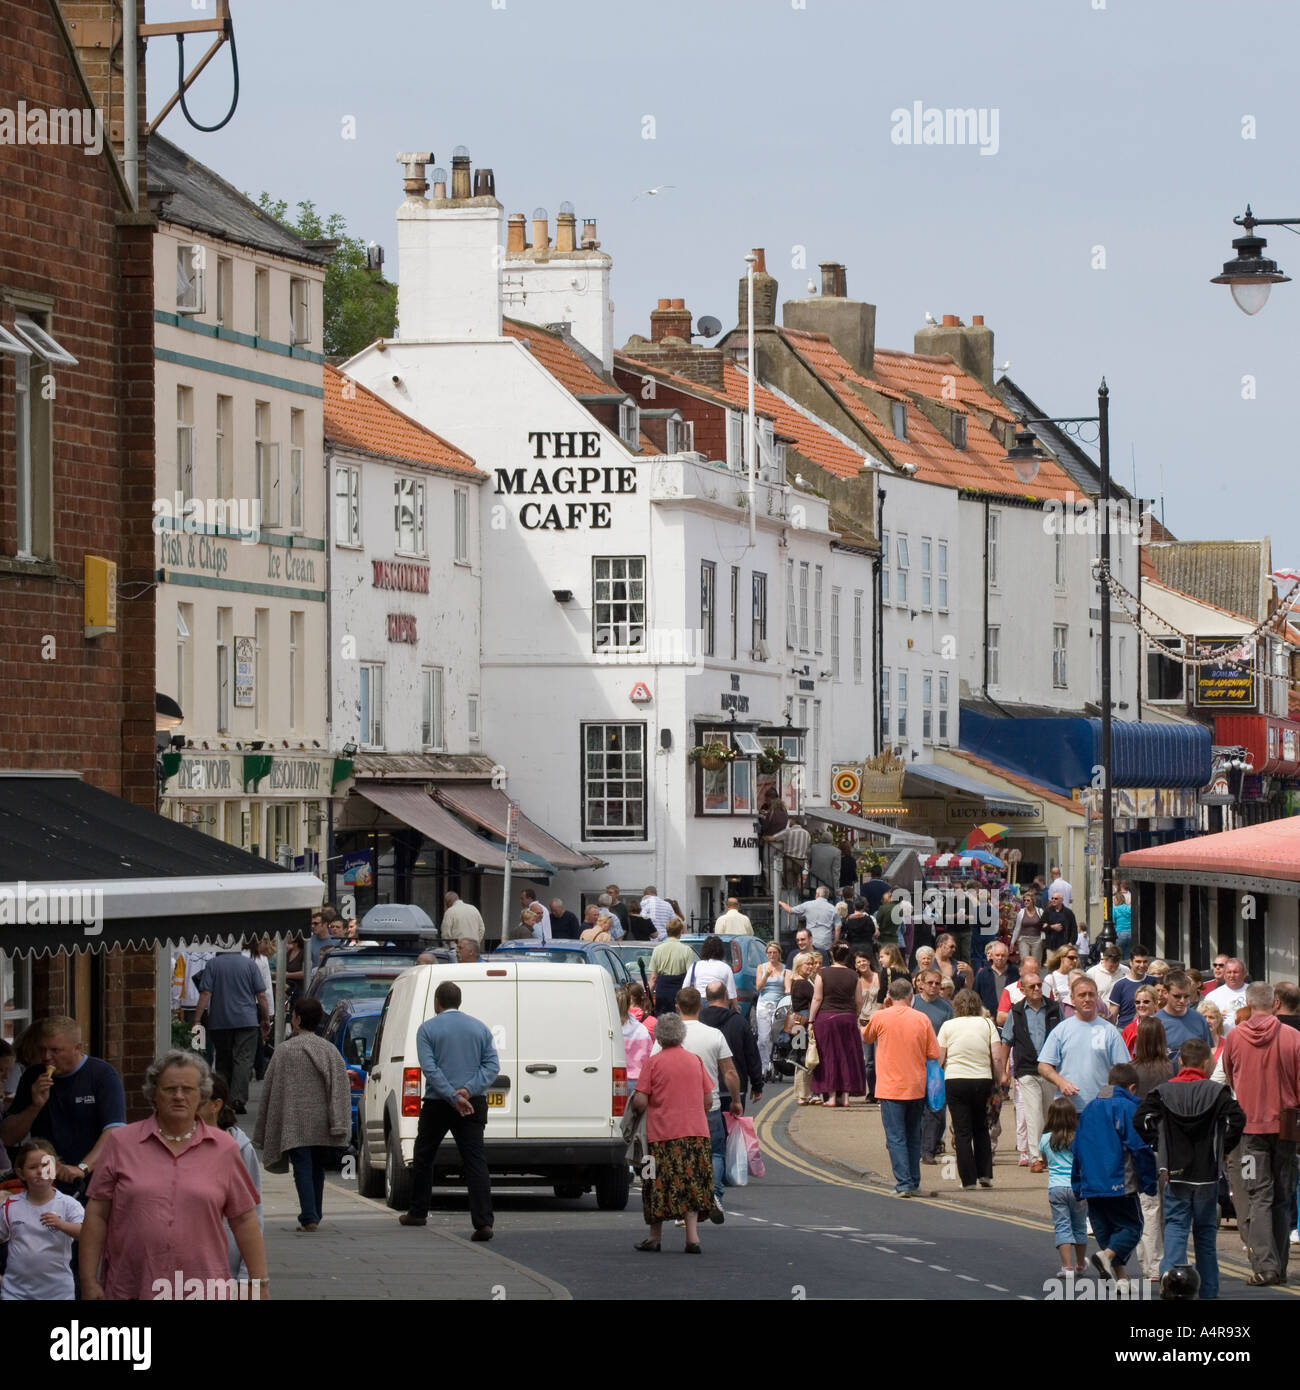 Magpie Street Food Whitby